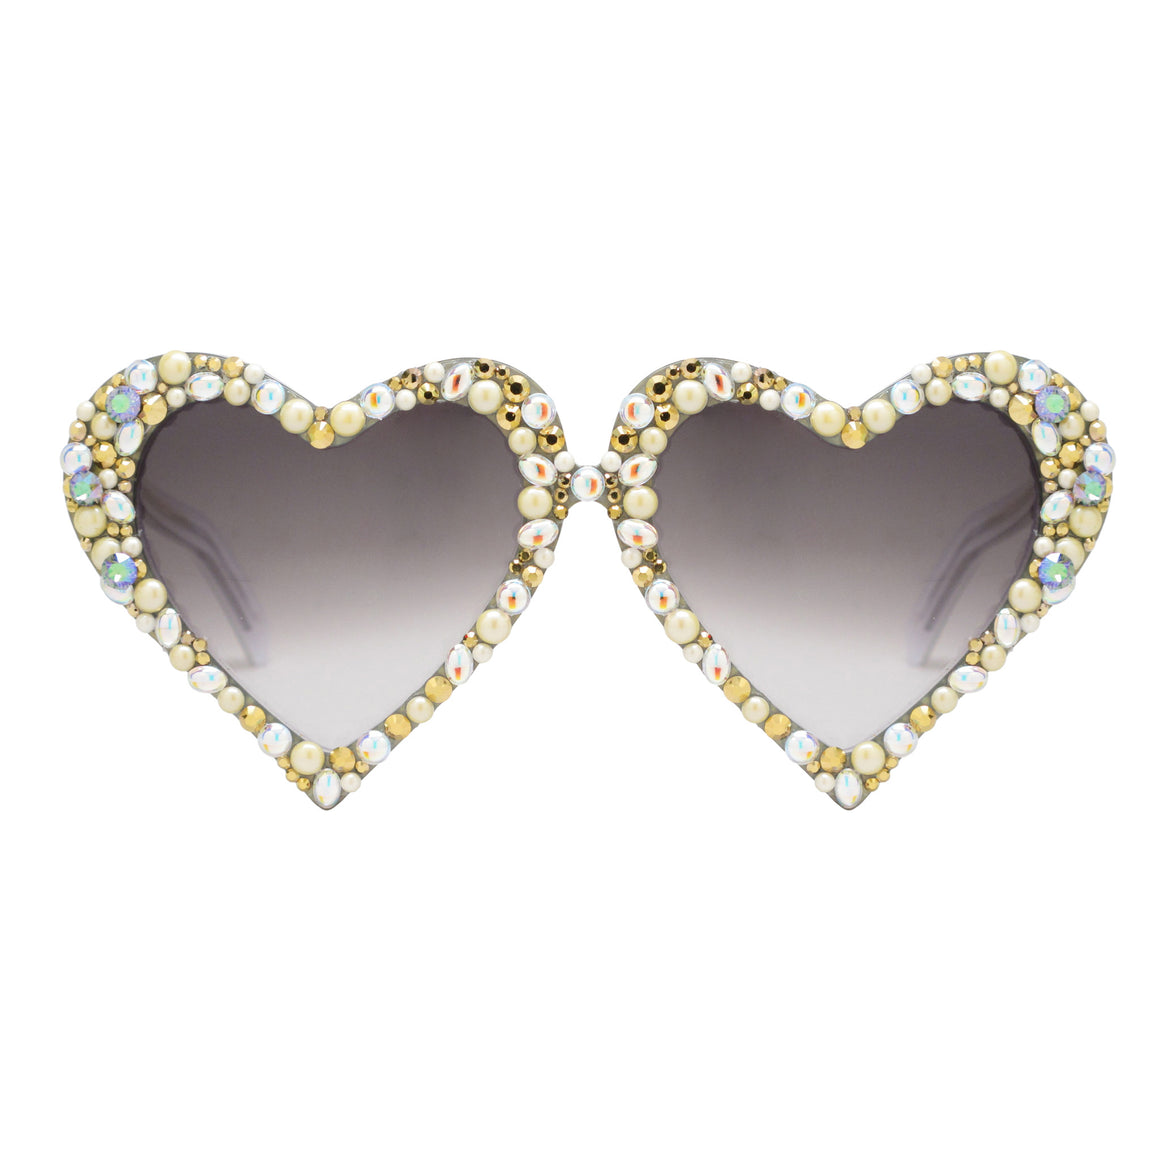 Emma embellished heart shaped glasses